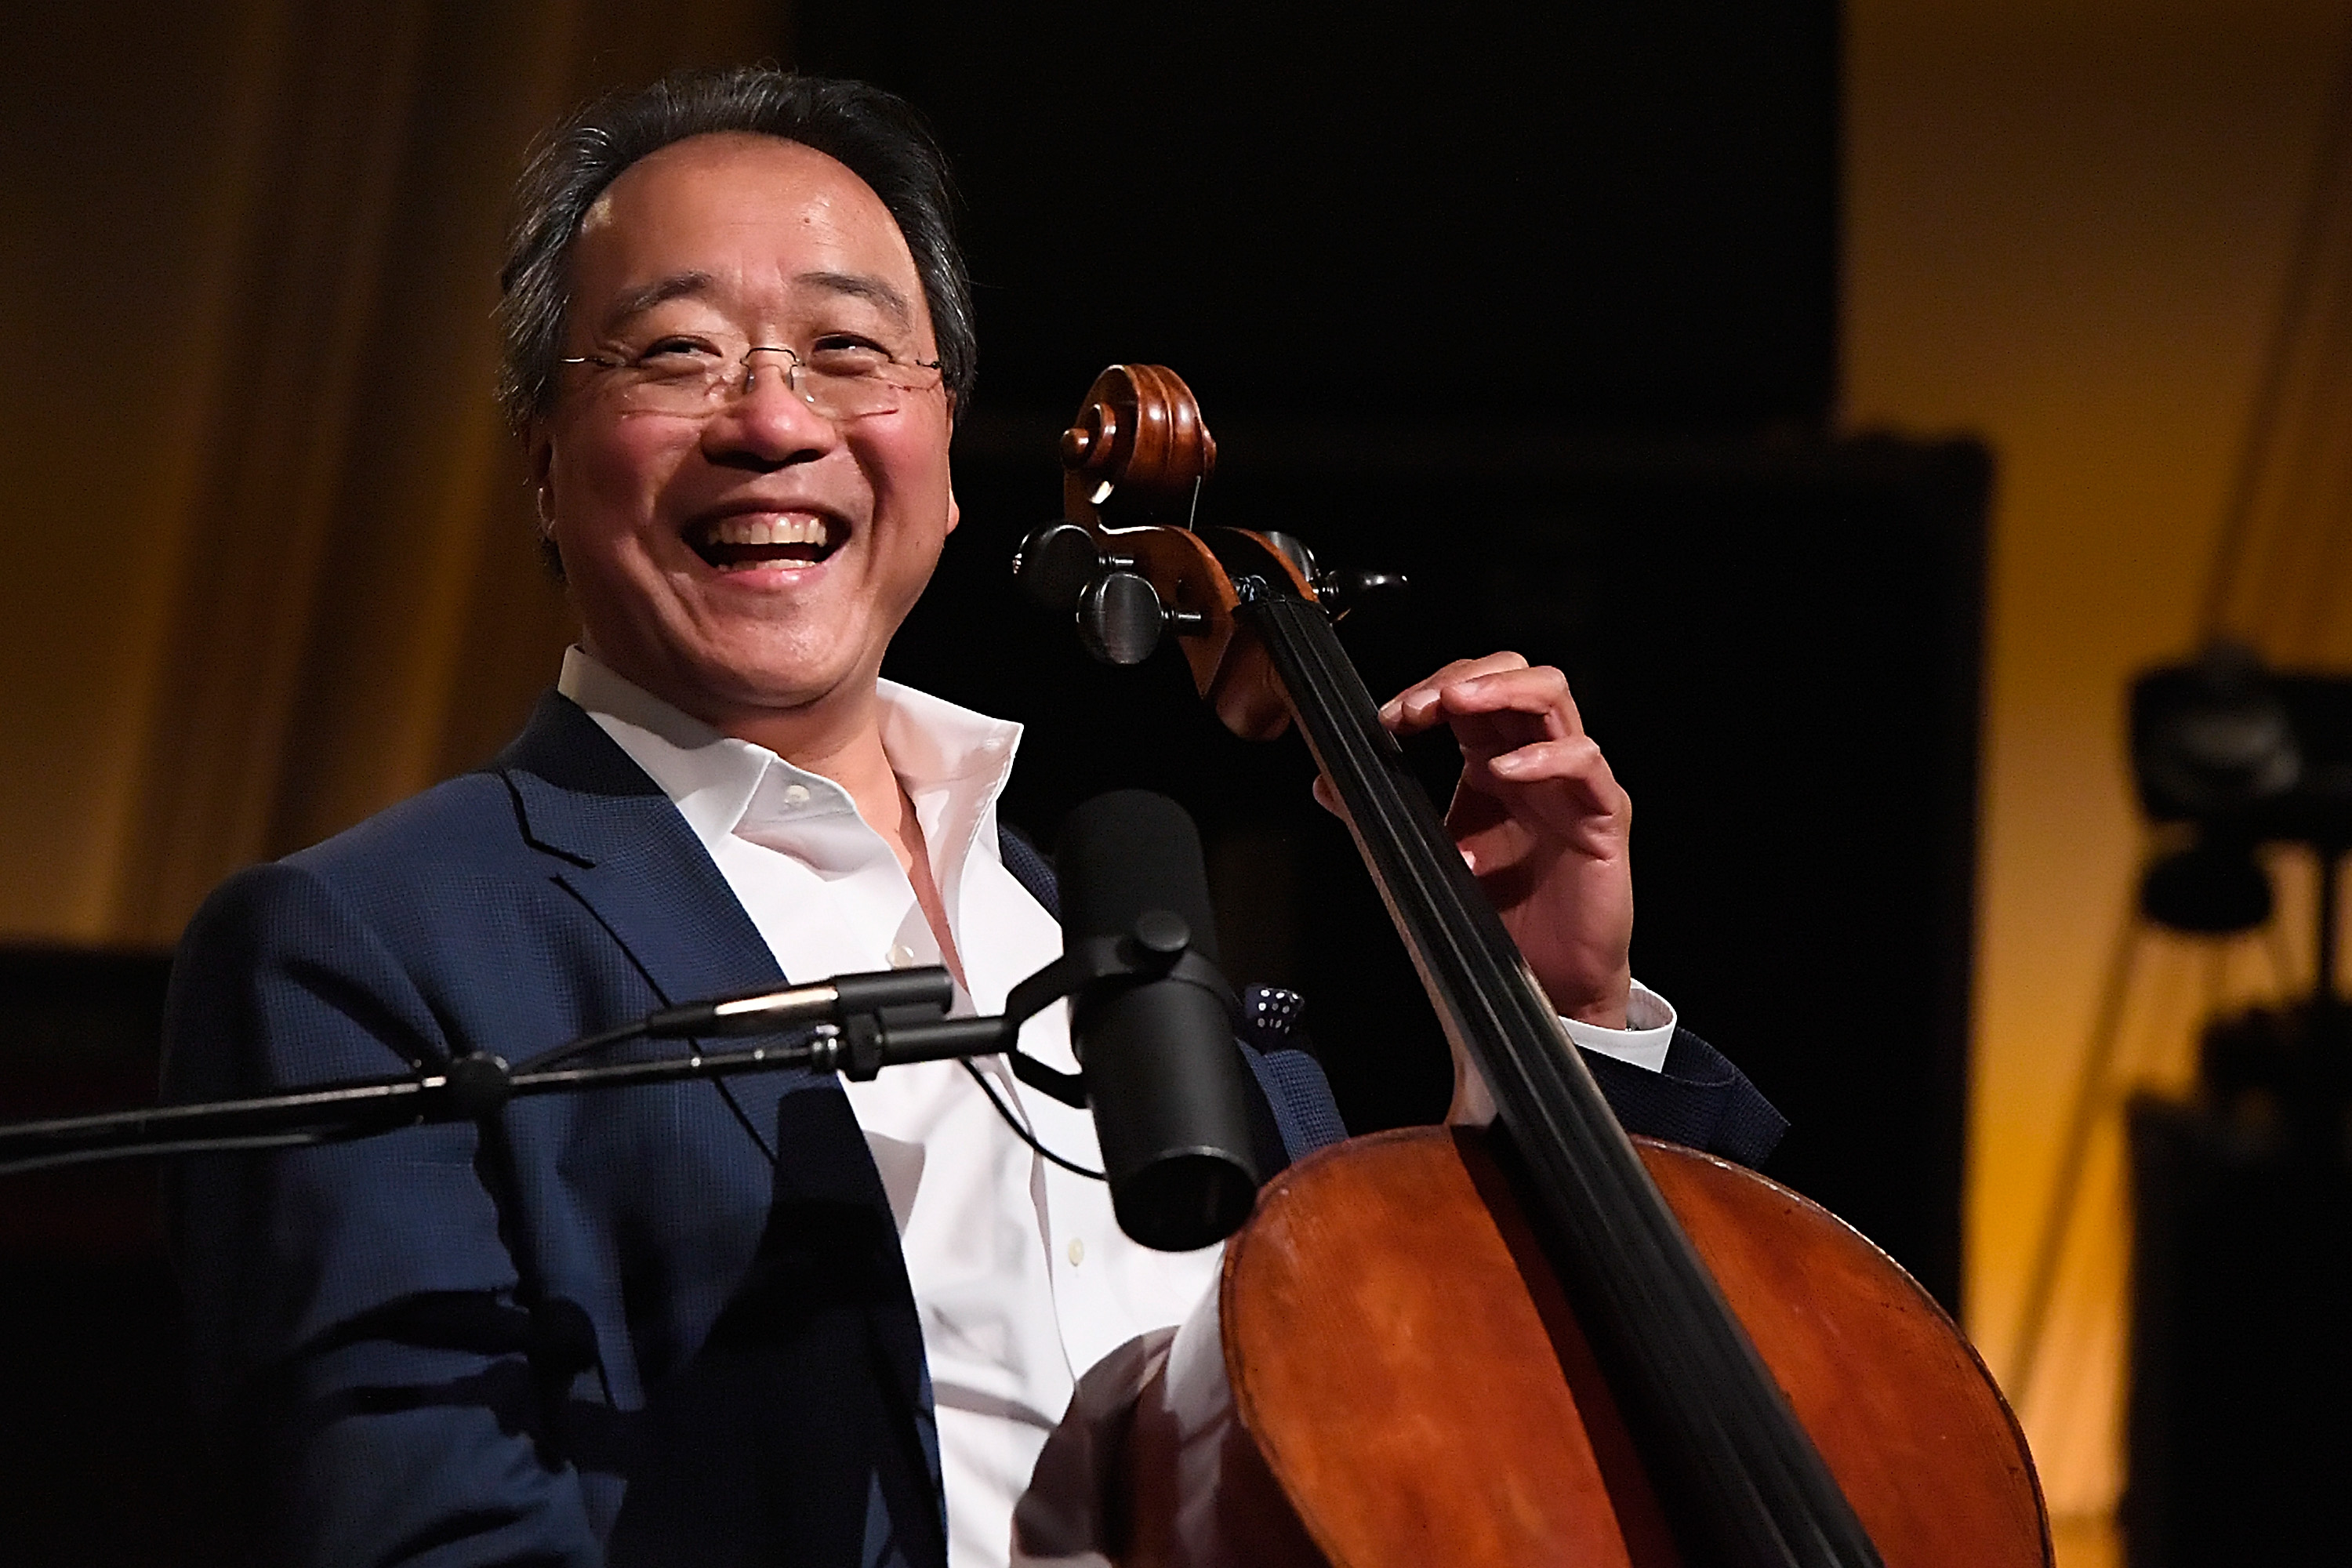 Cello Maestro Yo Yo Ma Provides Musical Solace Here Now Whether you're looking for the latest games or really cool. https www wbur org hereandnow 2020 03 26 yo yo ma songs of comfort